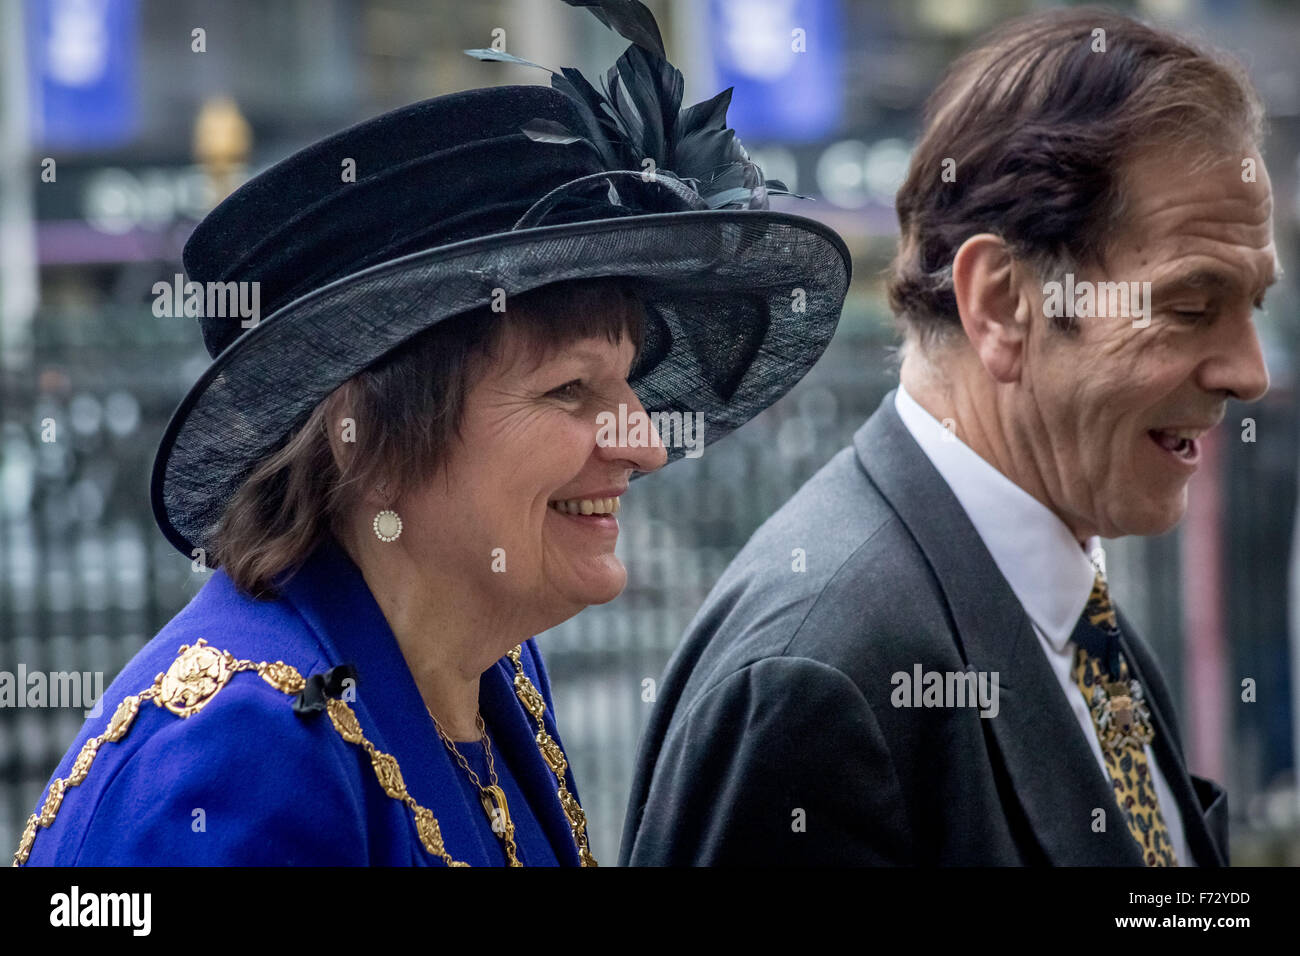 London, UK. 24th November, 2015. Jeffrey Evans the Lord Mayor of London arrives to attend the Tenth General Synod - Stock Image